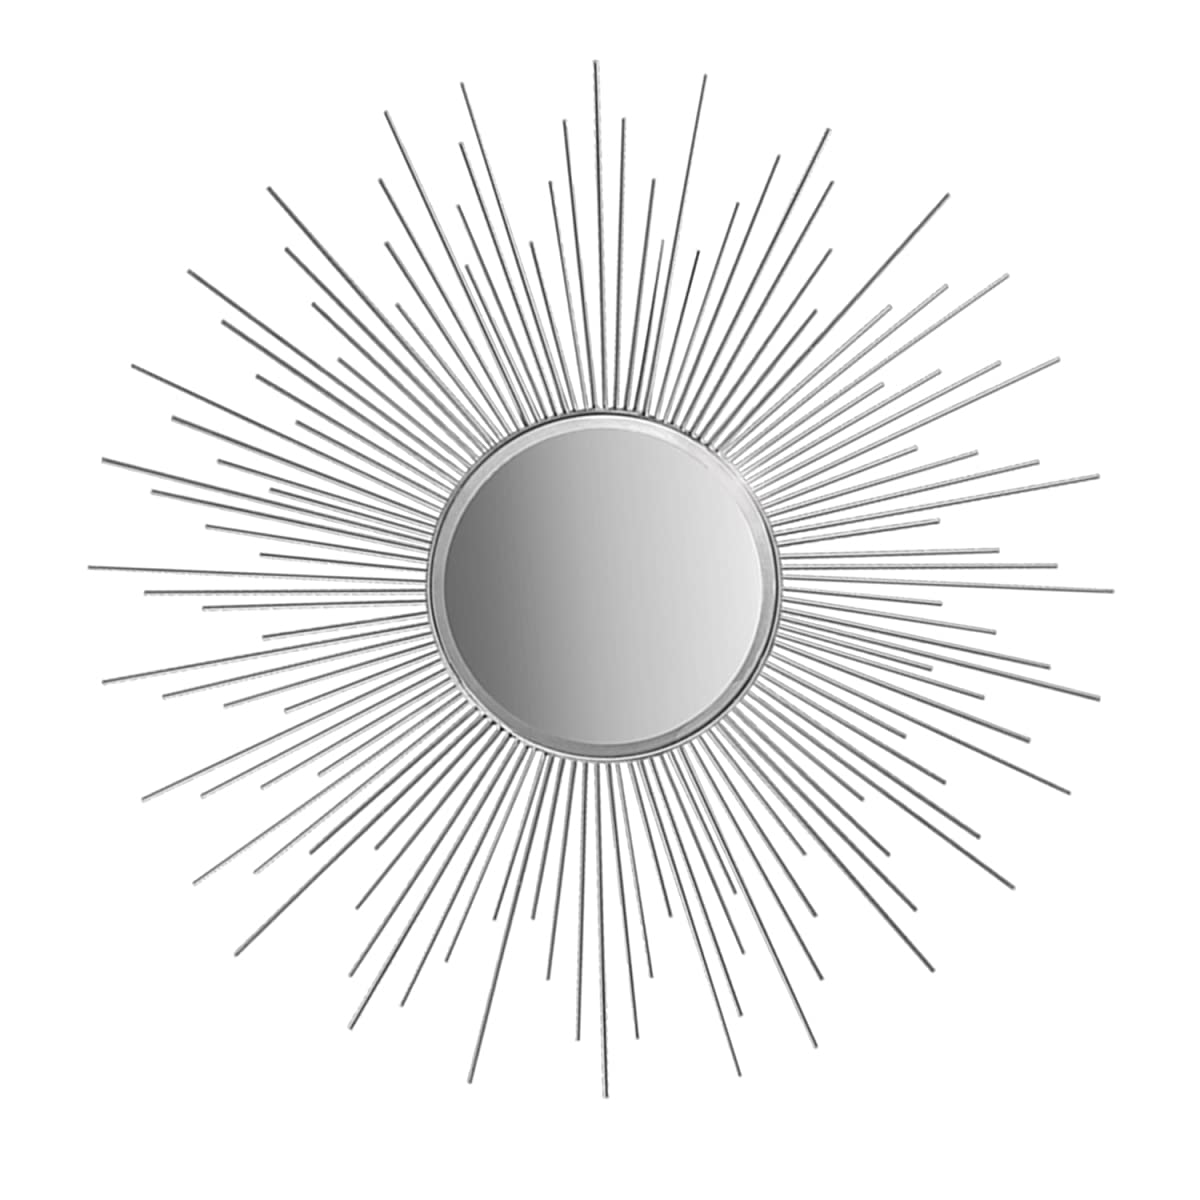 """36"""" Decorative Wall Hanging Mirror in Sunburst Shape, Brushed Metal Sunburst Round Wall Mirror, Mid Century Modern Style Mirror, Brushed Metallic Finish in Gold, Copper or Silver (Silver)"""